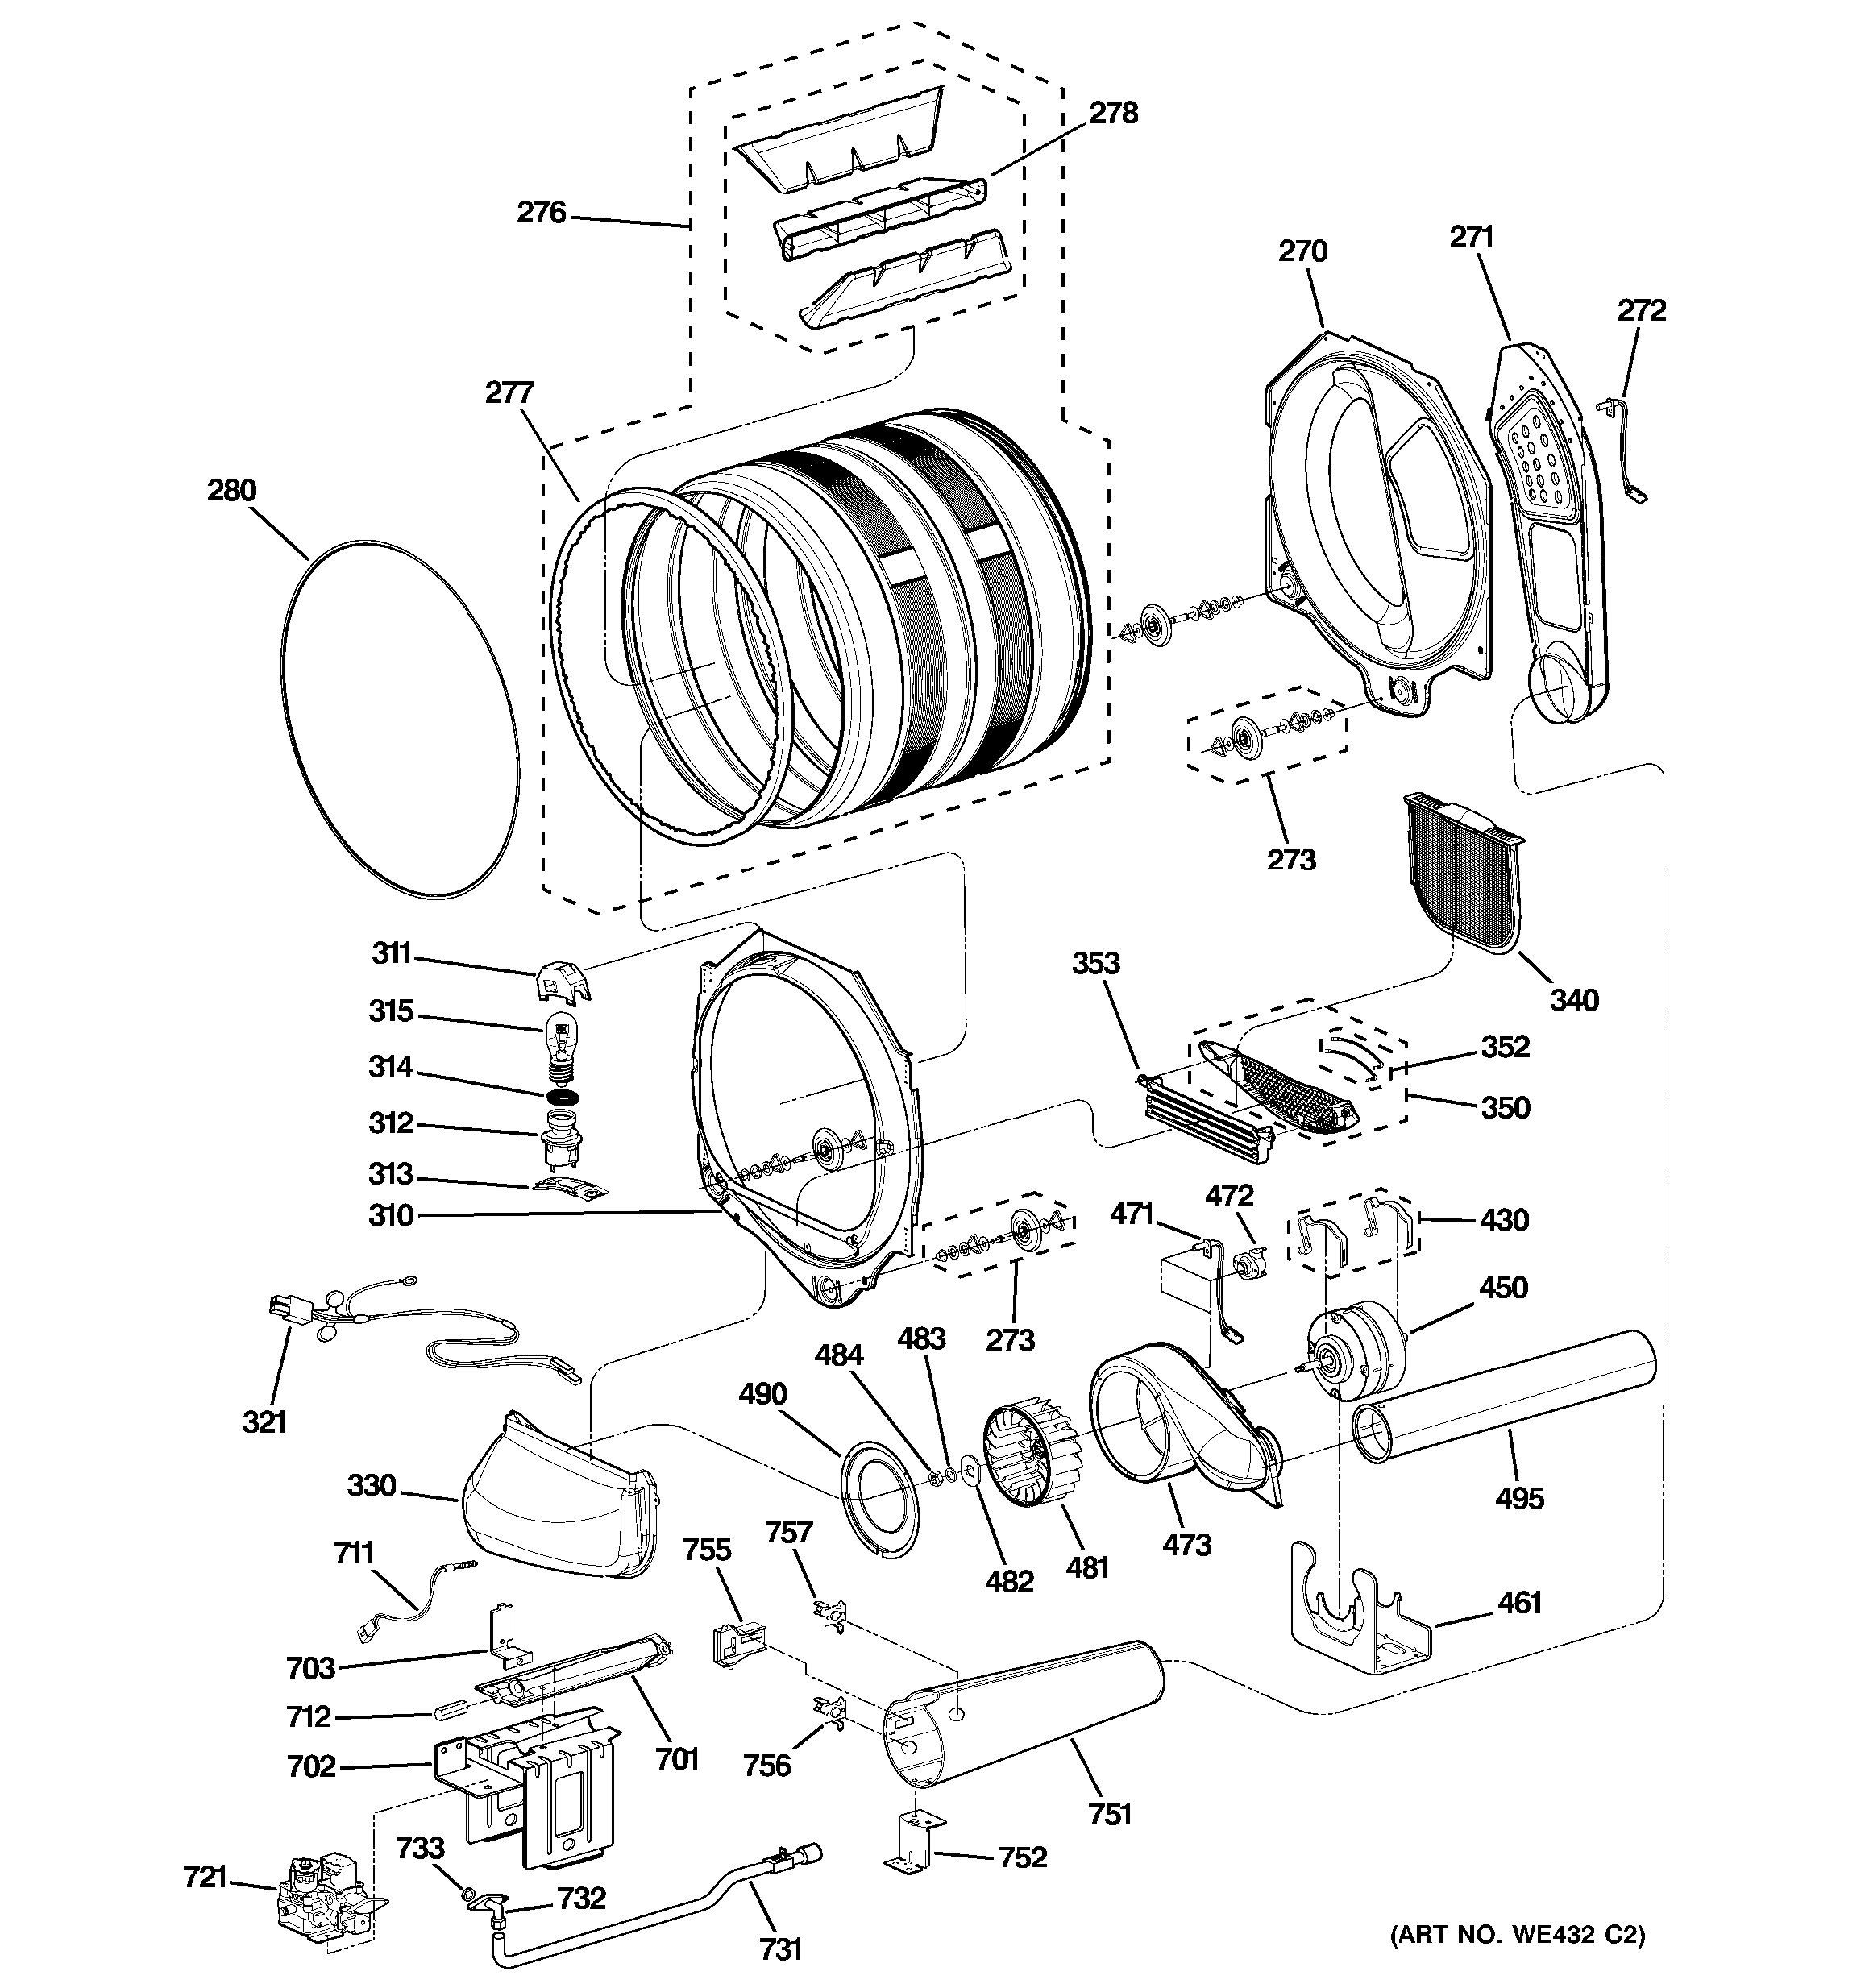 Assembly View For Drum Blower Amp Motor